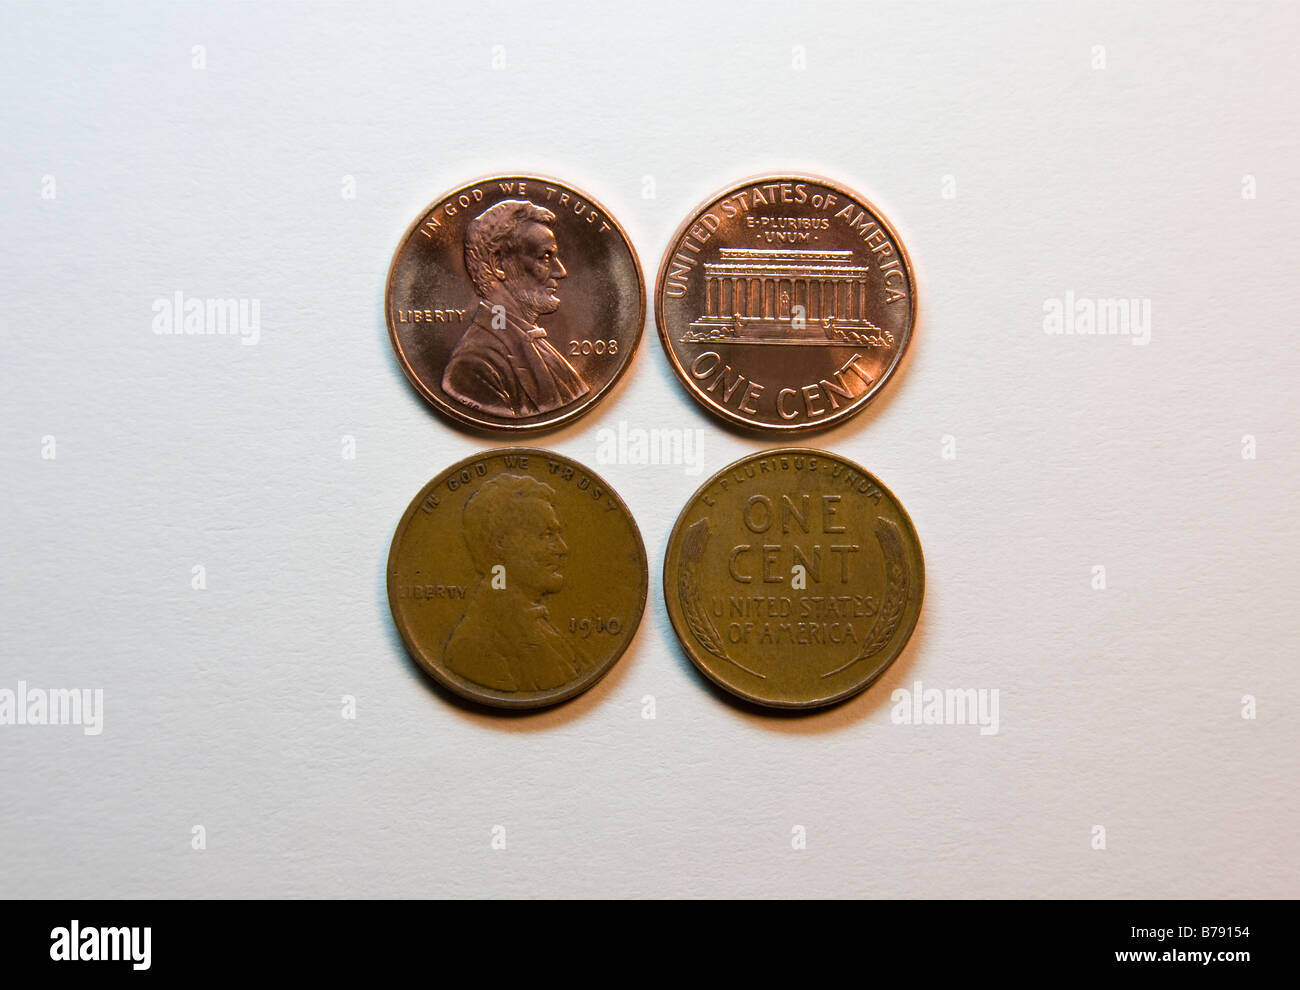 US Currency.  2008 penny above a 1910 'wheat' penny showing obverse and reverse. - Stock Image